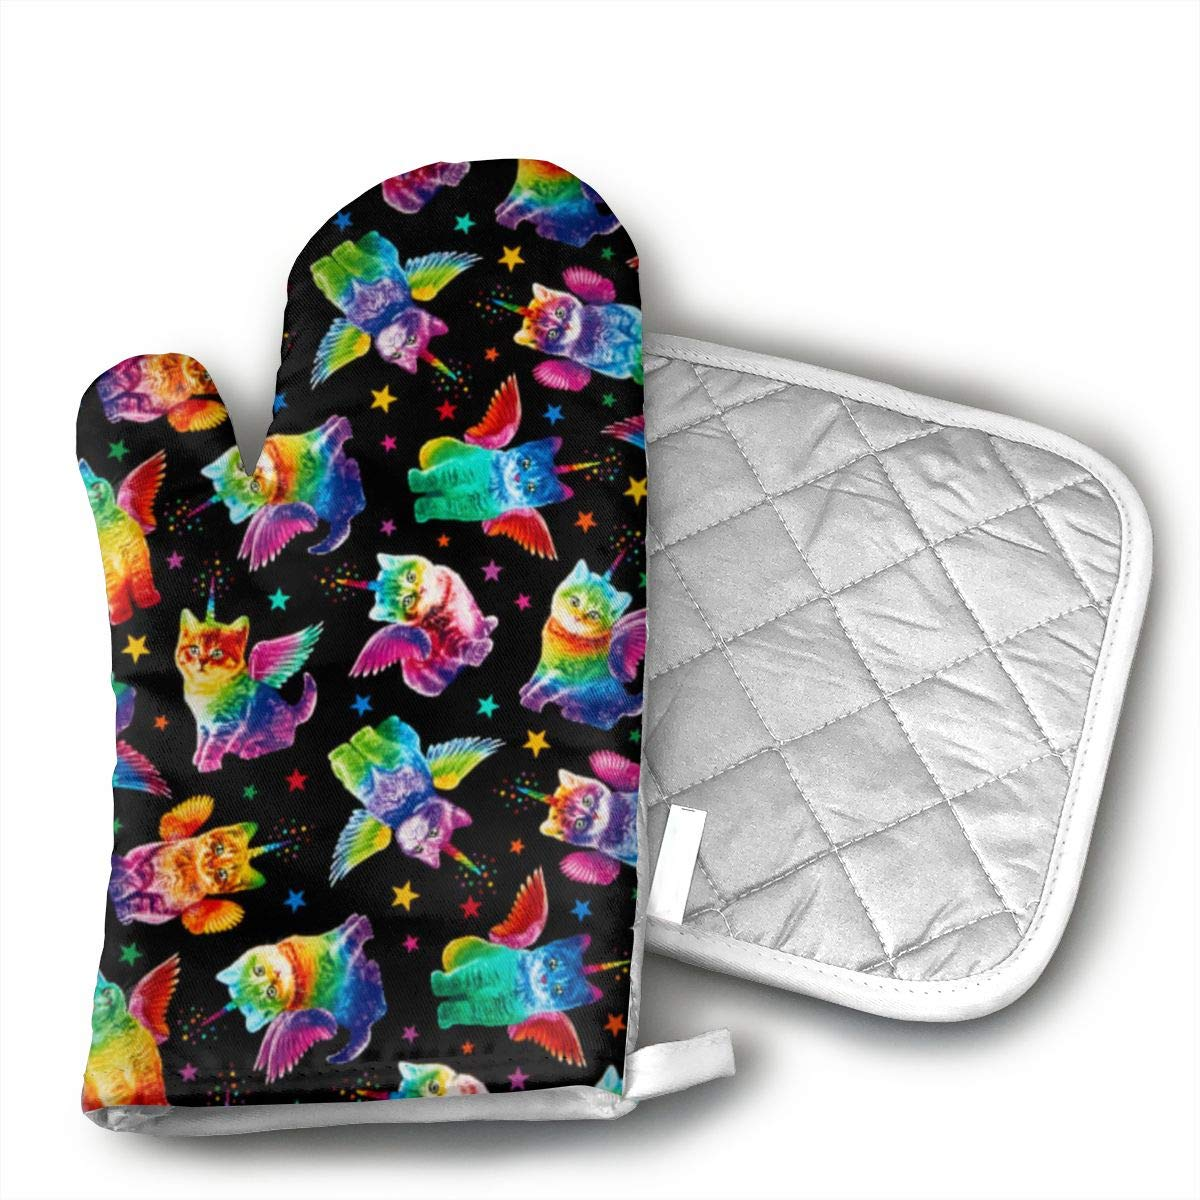 Ydsgjds Rainbow Unicorn Cats Black Oven Mitts and BBQ Gloves Pot Holders, Heat Resistant Mitts for Finger Hand Wrist Protection with Inner Lining